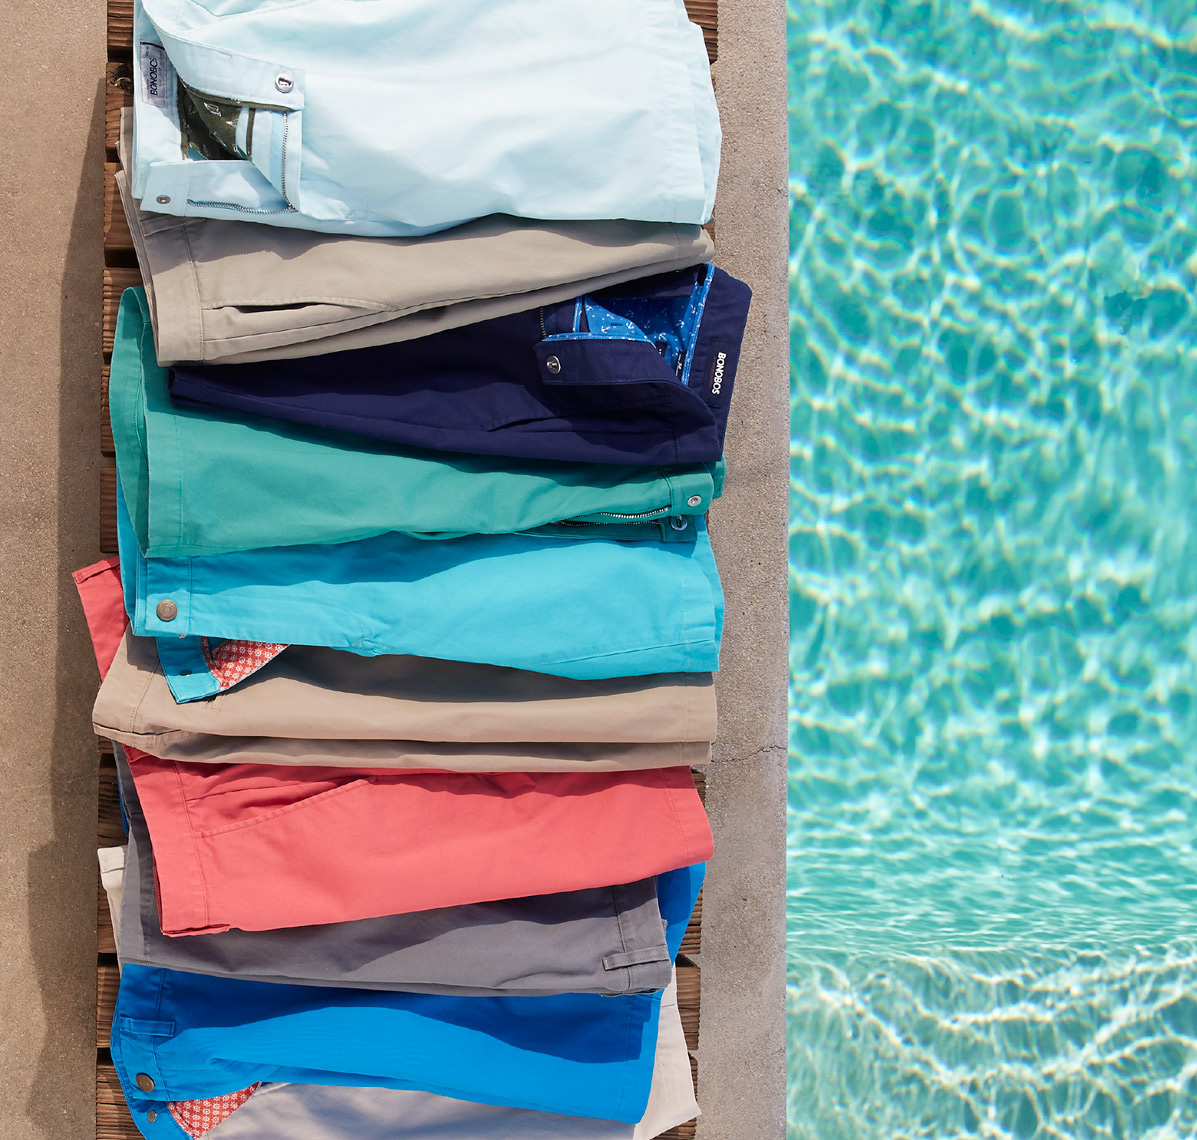 downward view of selection of colorful shorts folded on cement next to pool